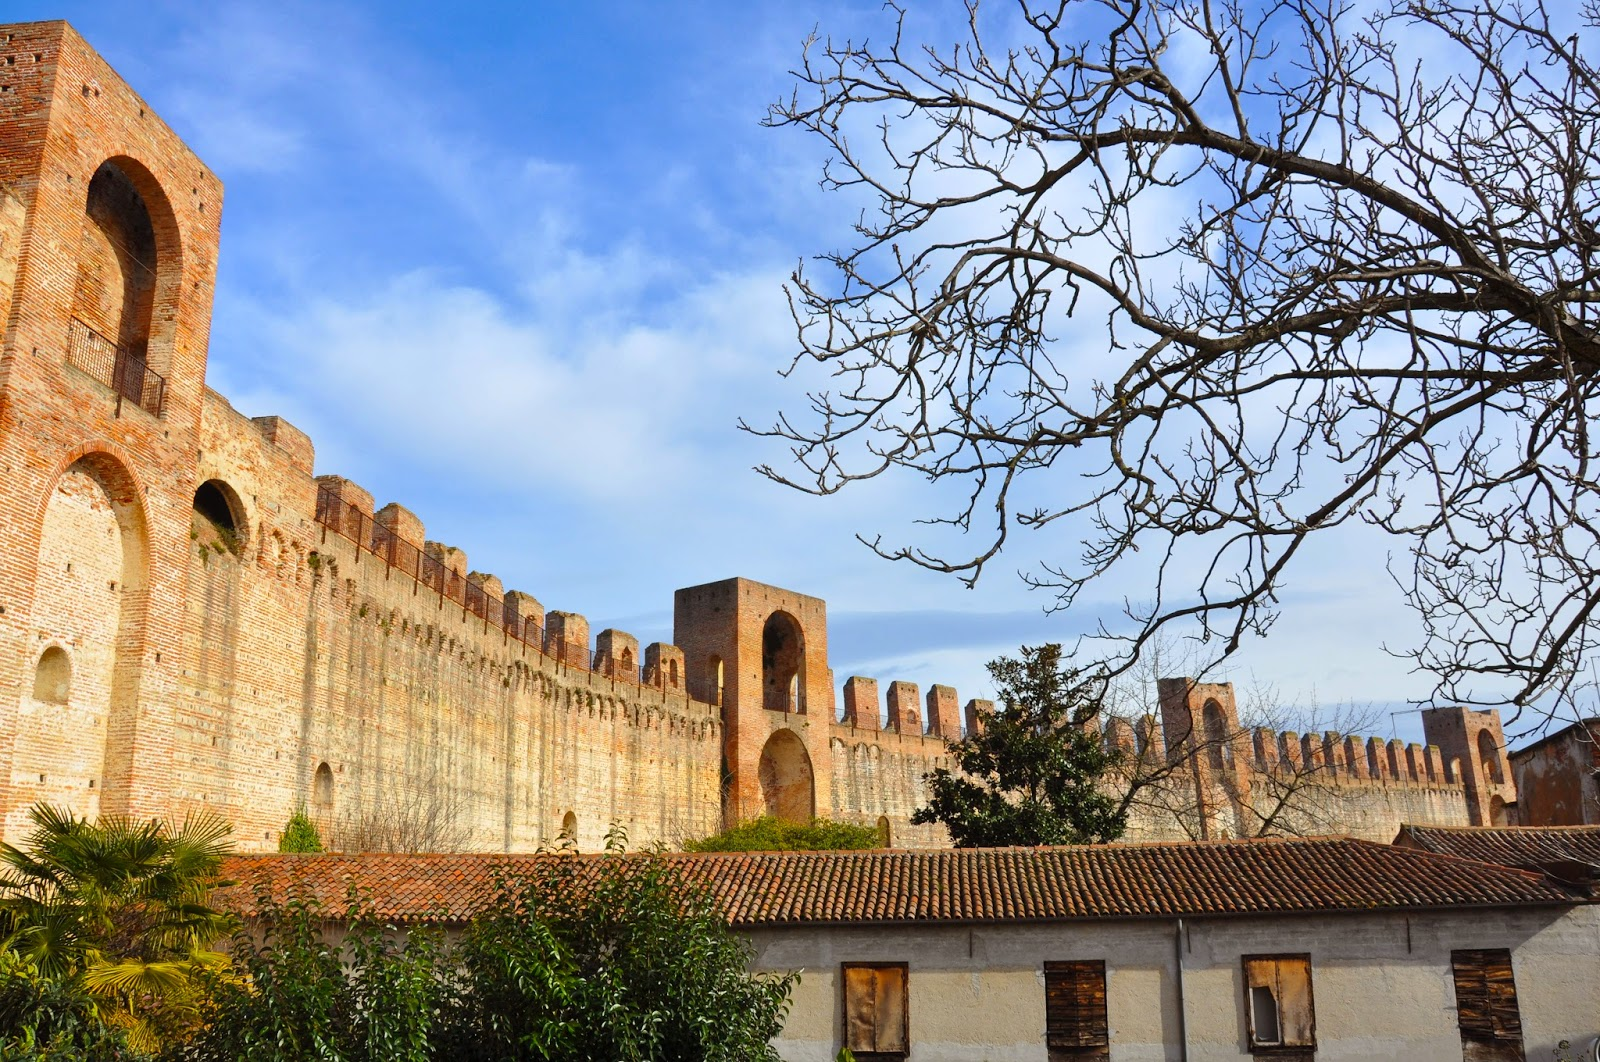 preserved medieval wall town Cittadella Italy